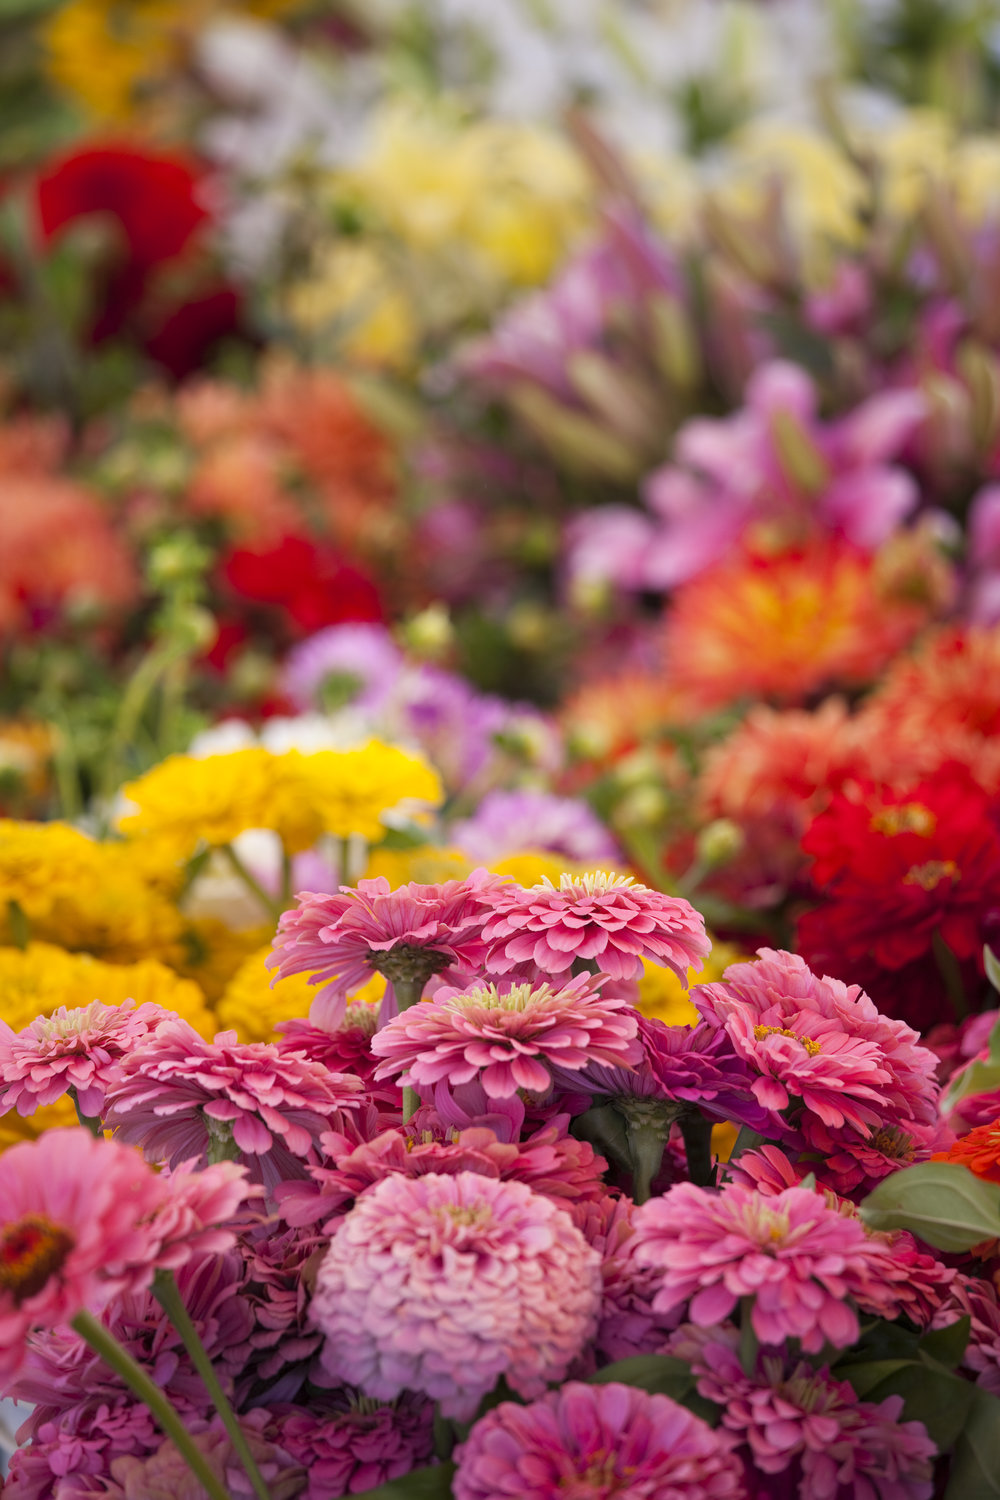 Fresh-Spring-Bouquet-of-Flowers-at-Farmers-Market-182446786_3744x5616.jpeg